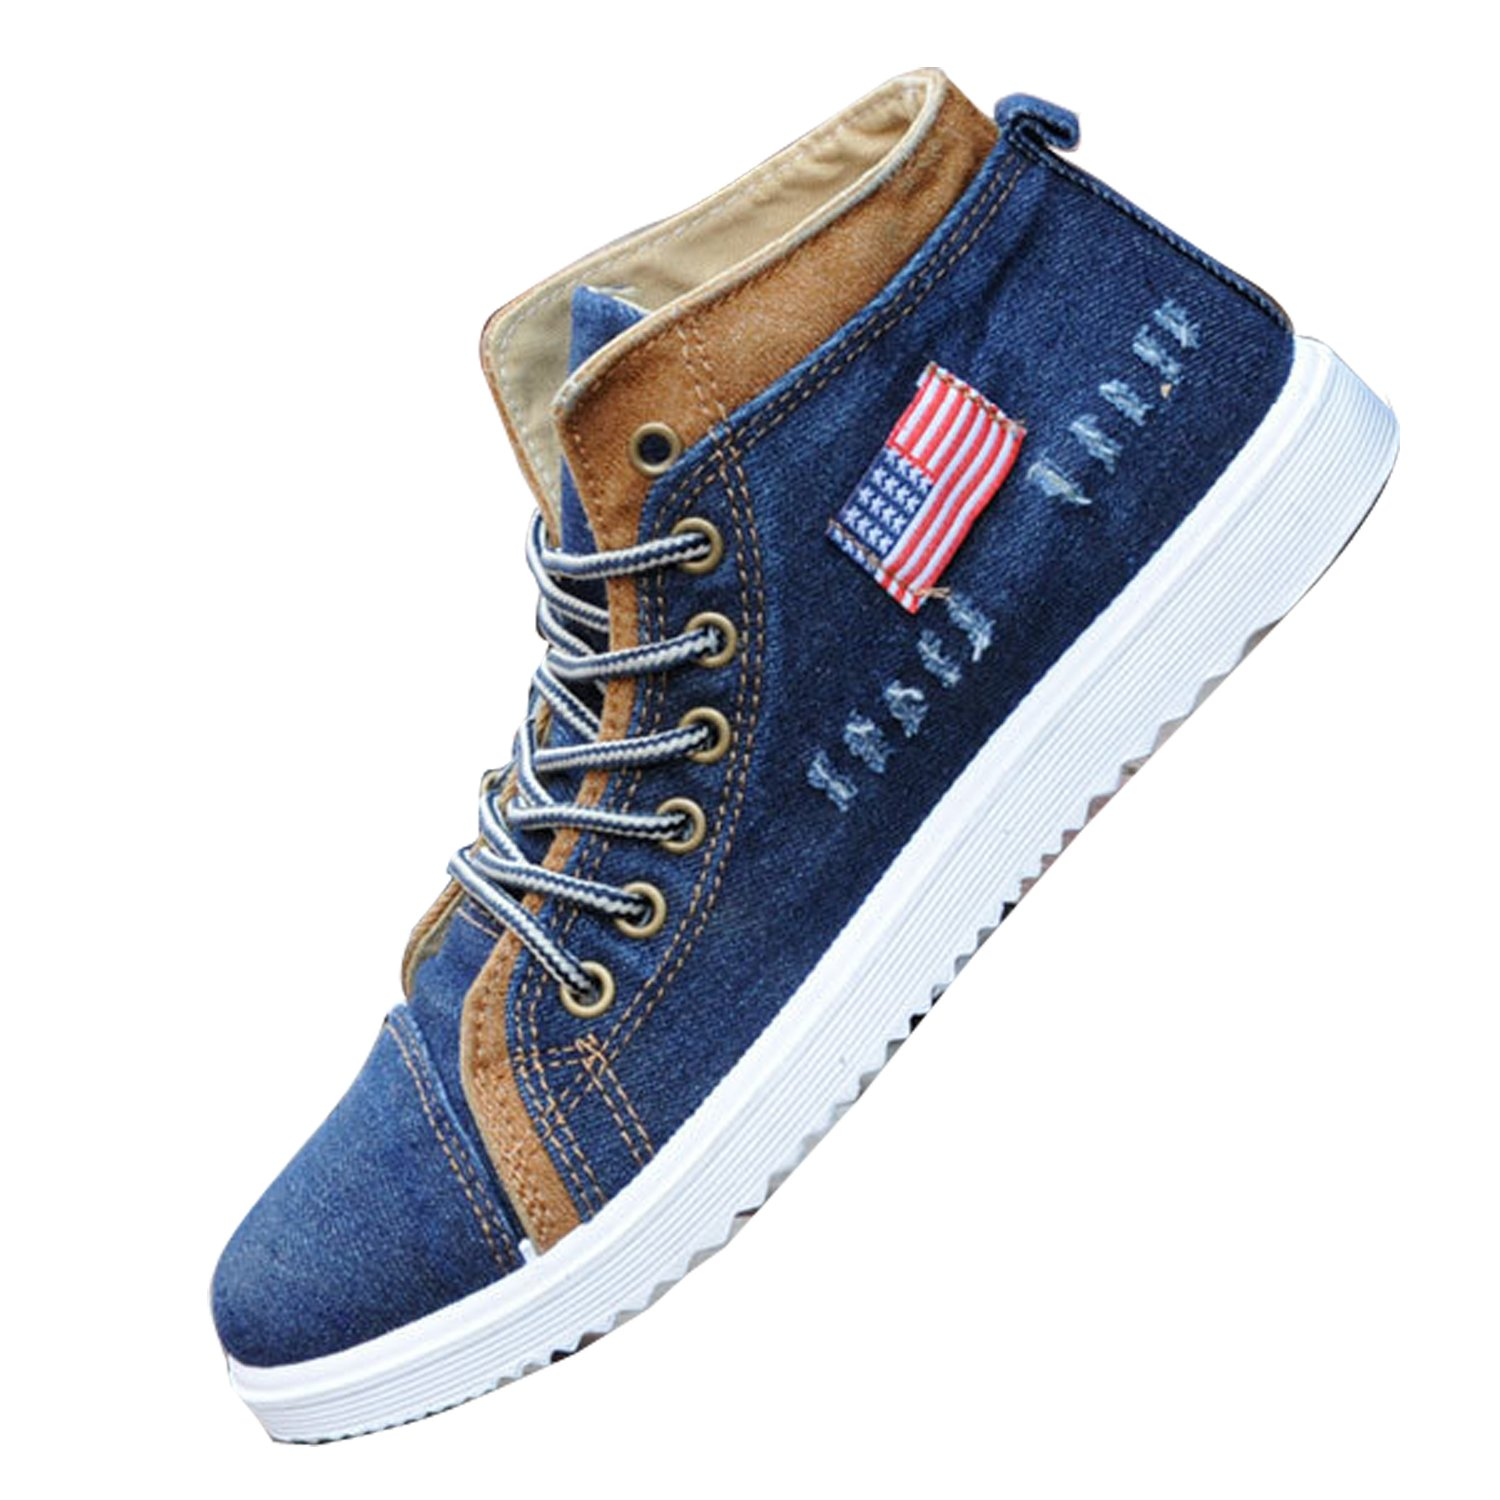 Gaorui Fashion Men's Canvas Shoes High Top Lace Up Sneakers Casual Students Sport Flats